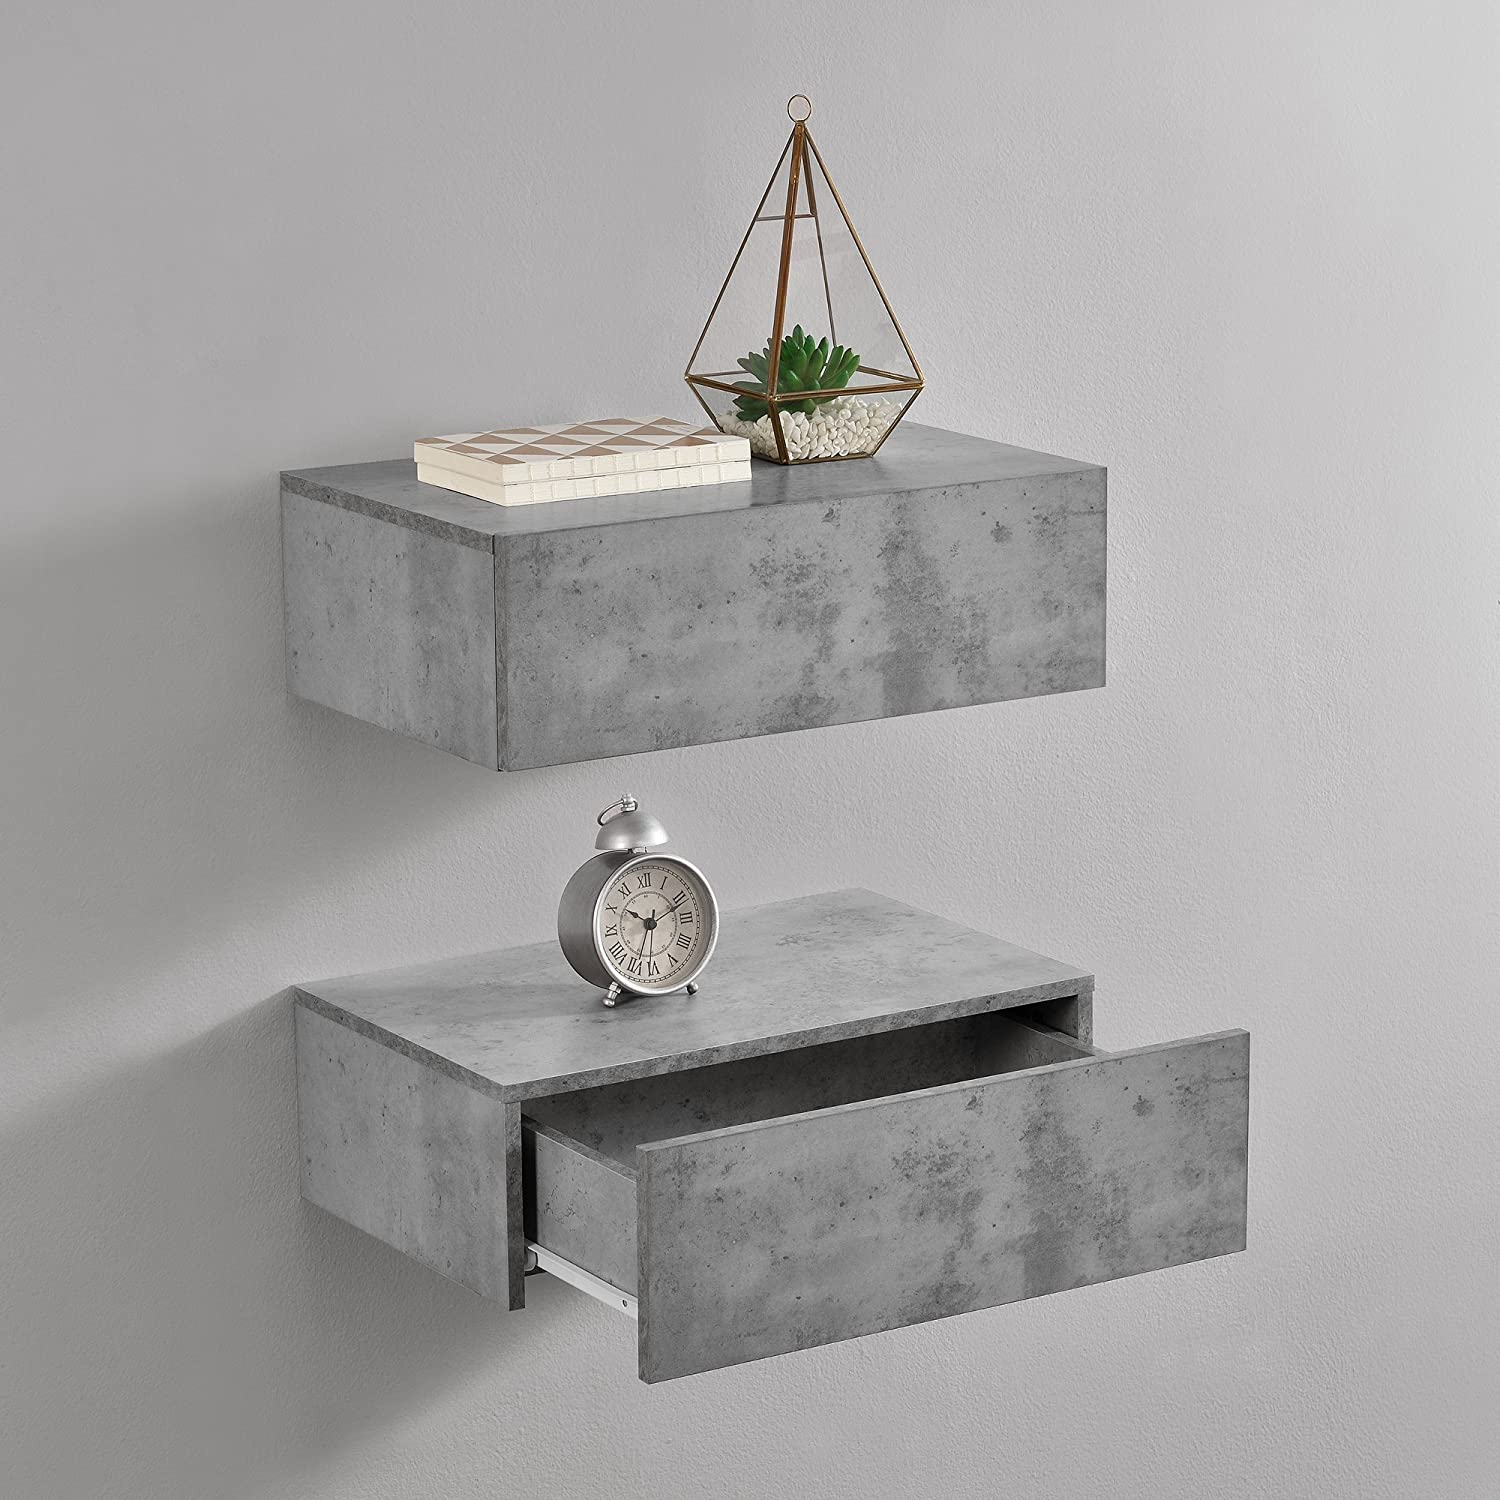 En Casa Wandregal Mit Schublade 2er Set Beton Optik 46x30x15cm